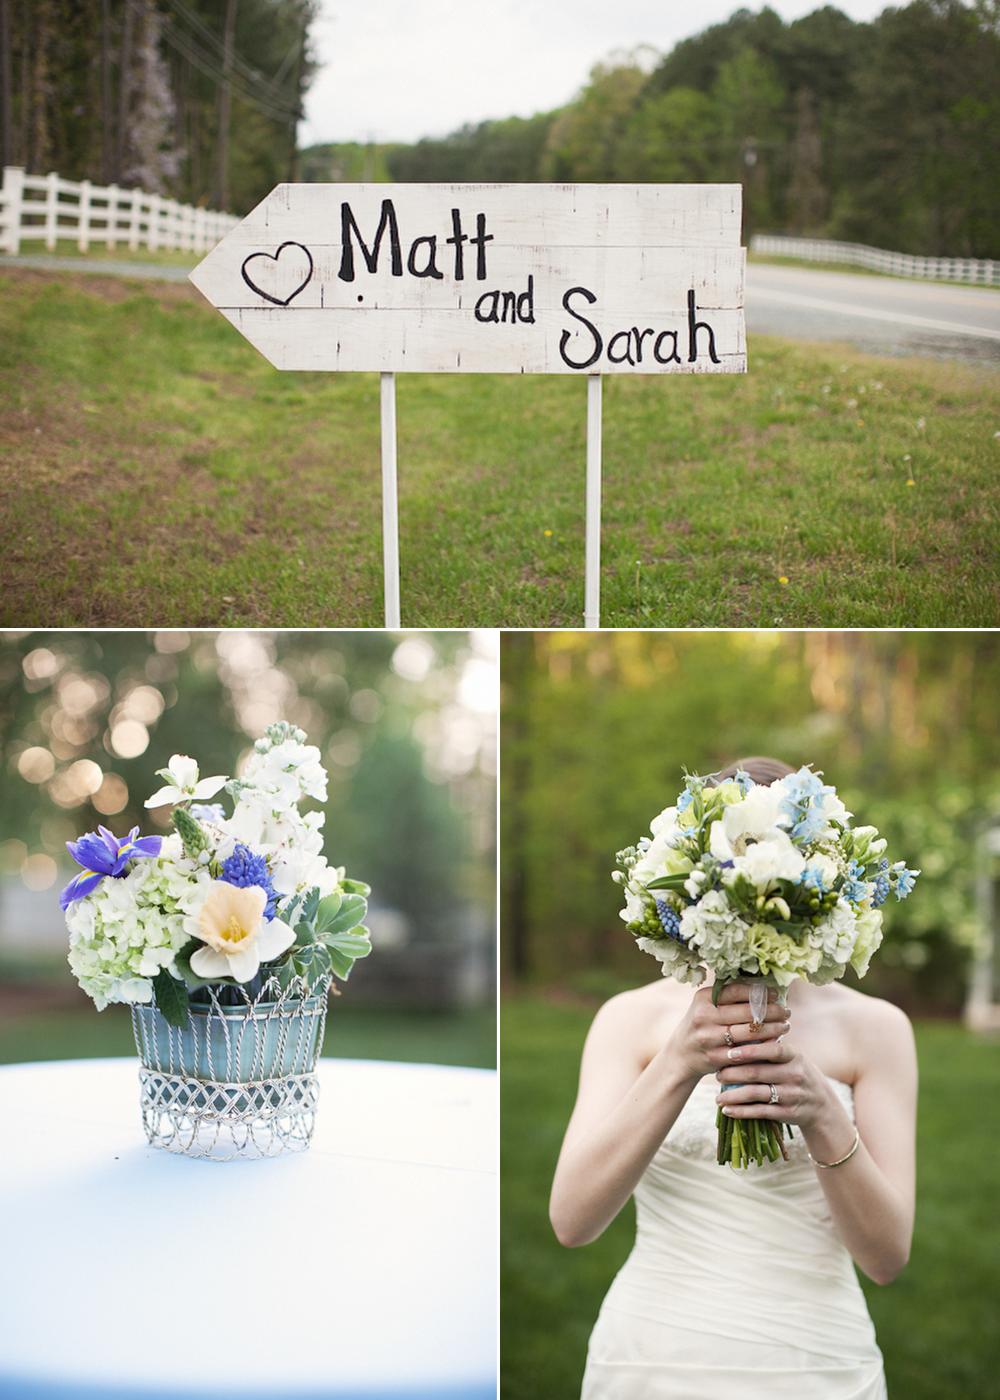 Rustic-real-wedding-romantic-bridal-ouquet-custom-wedding-ceremony-sign.original